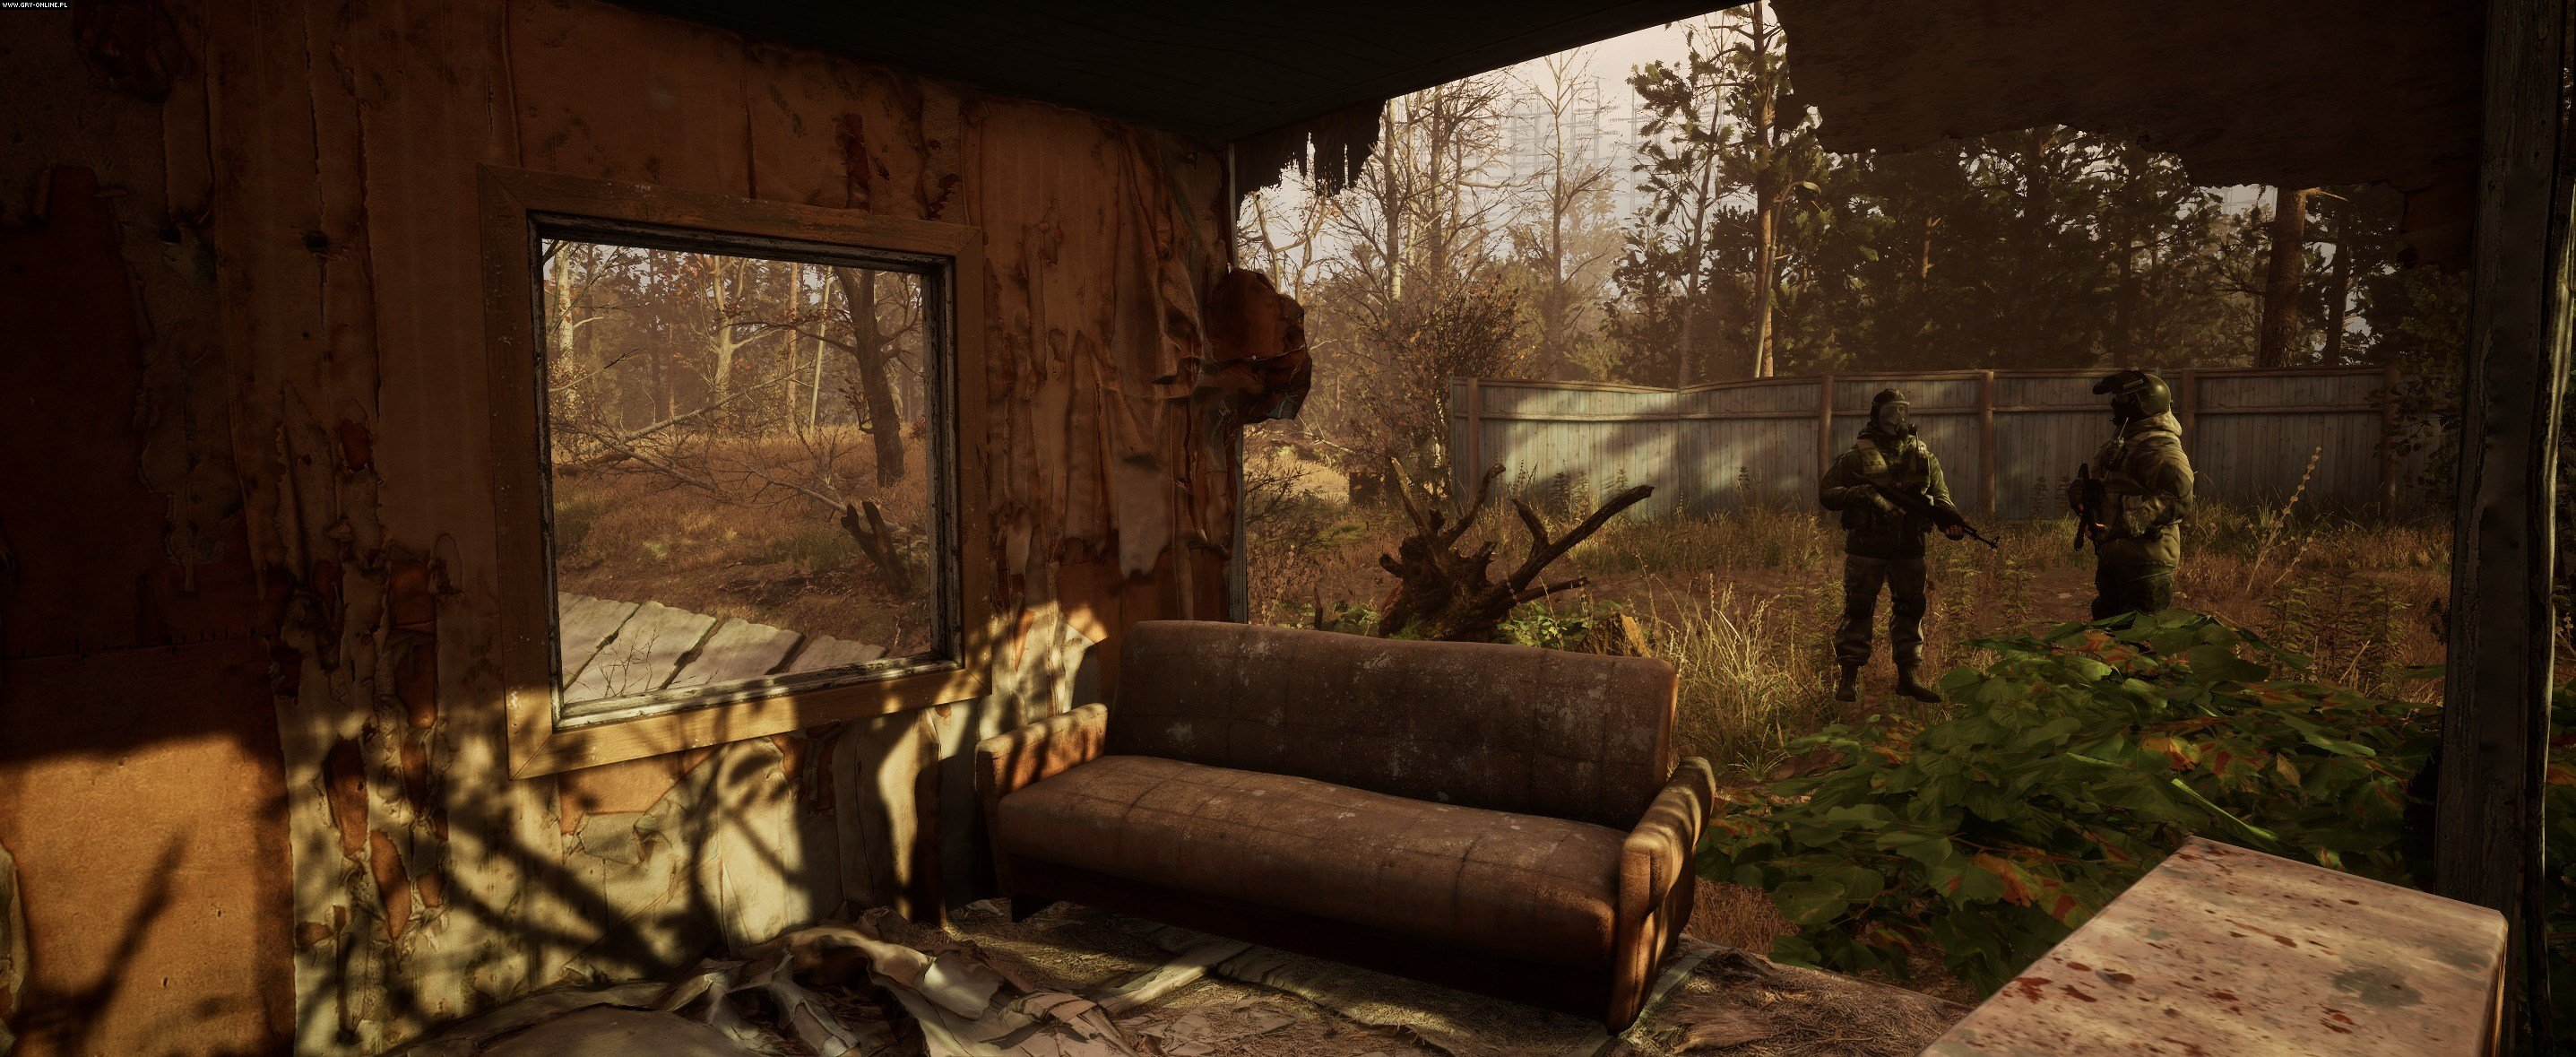 Chernobylite PC, PS4, XONE Games Image 3/21, The Farm 51